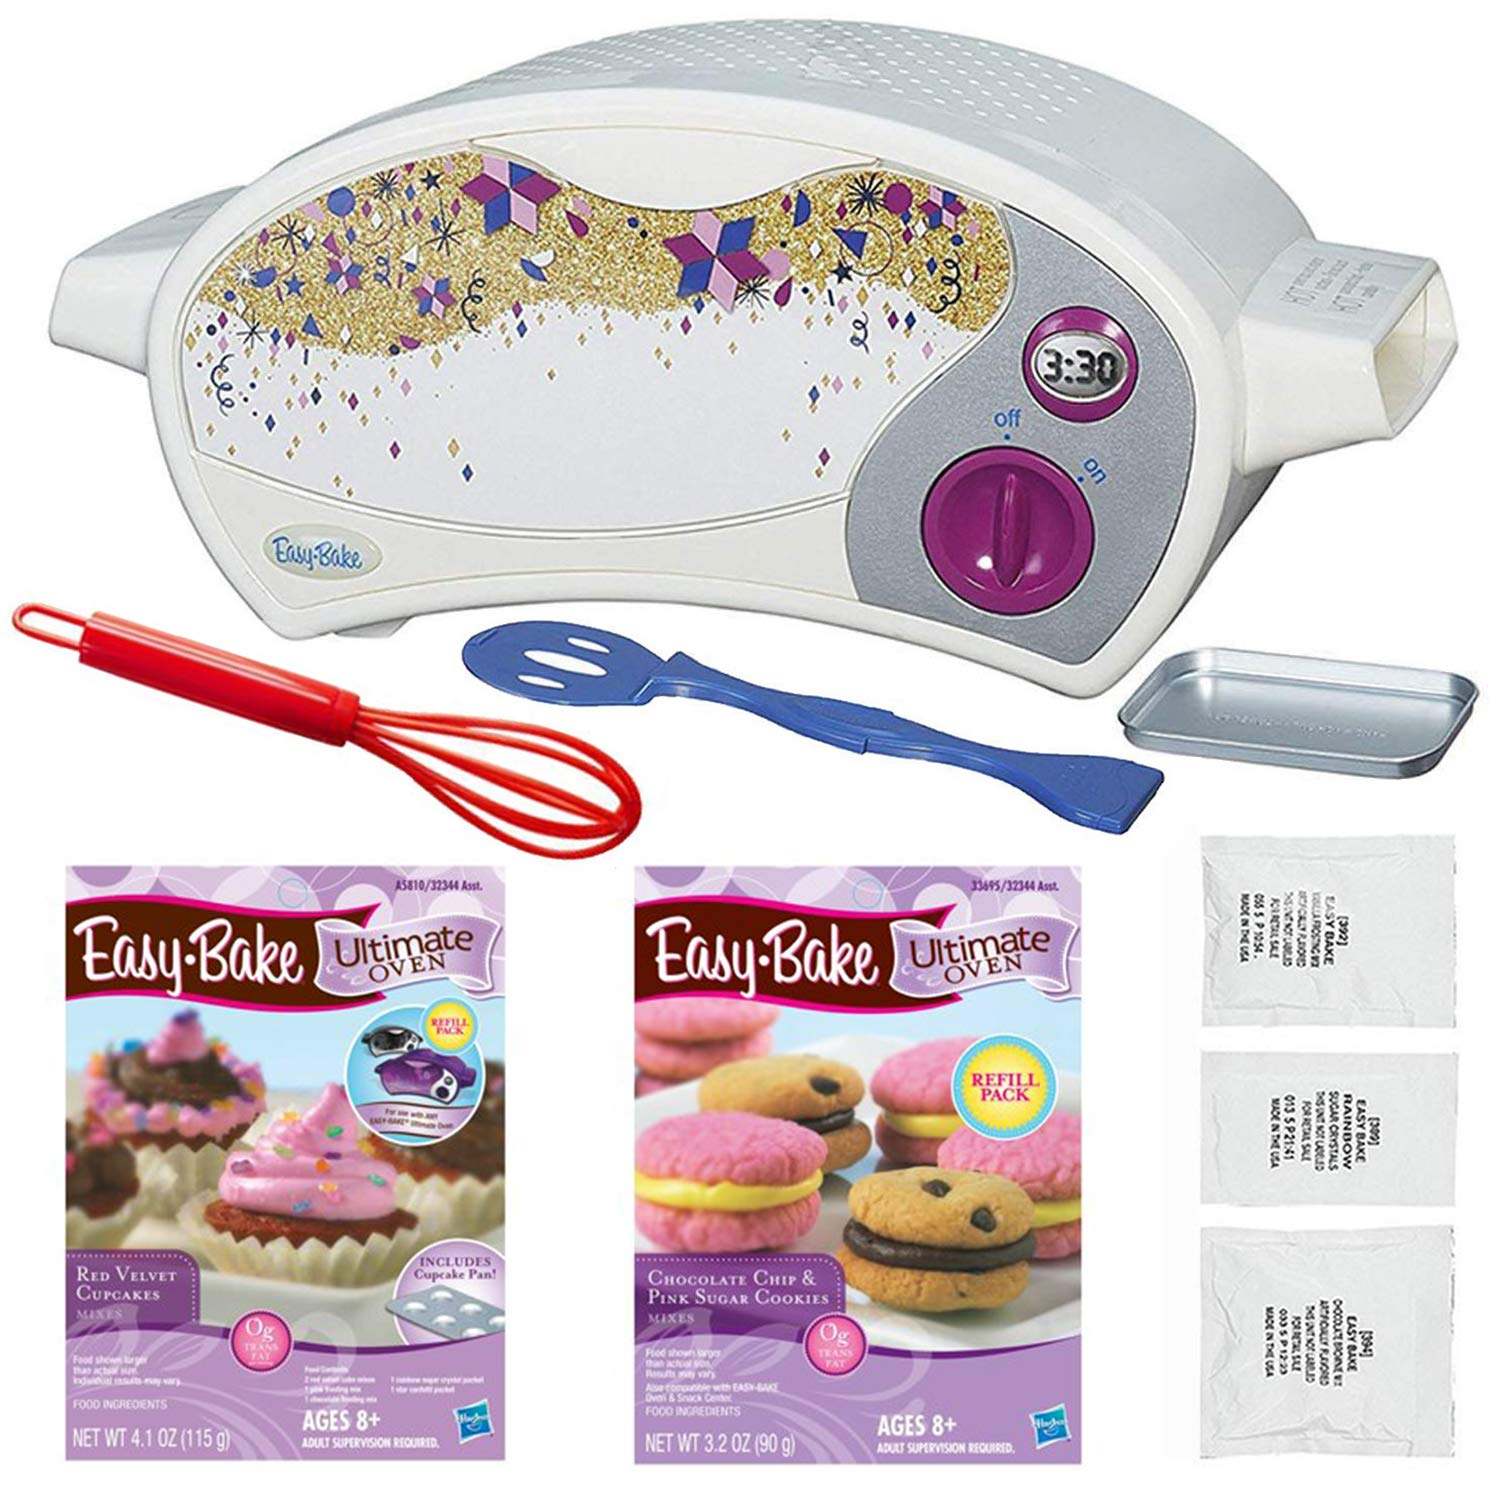 FLASH PARTY Easy Bake Oven Star Edition + Red Velvet Cupcakes Refill + Chocolate Chip and Pink Sugar Cookies Refill + Mini Whisk. by FLASH PARTY